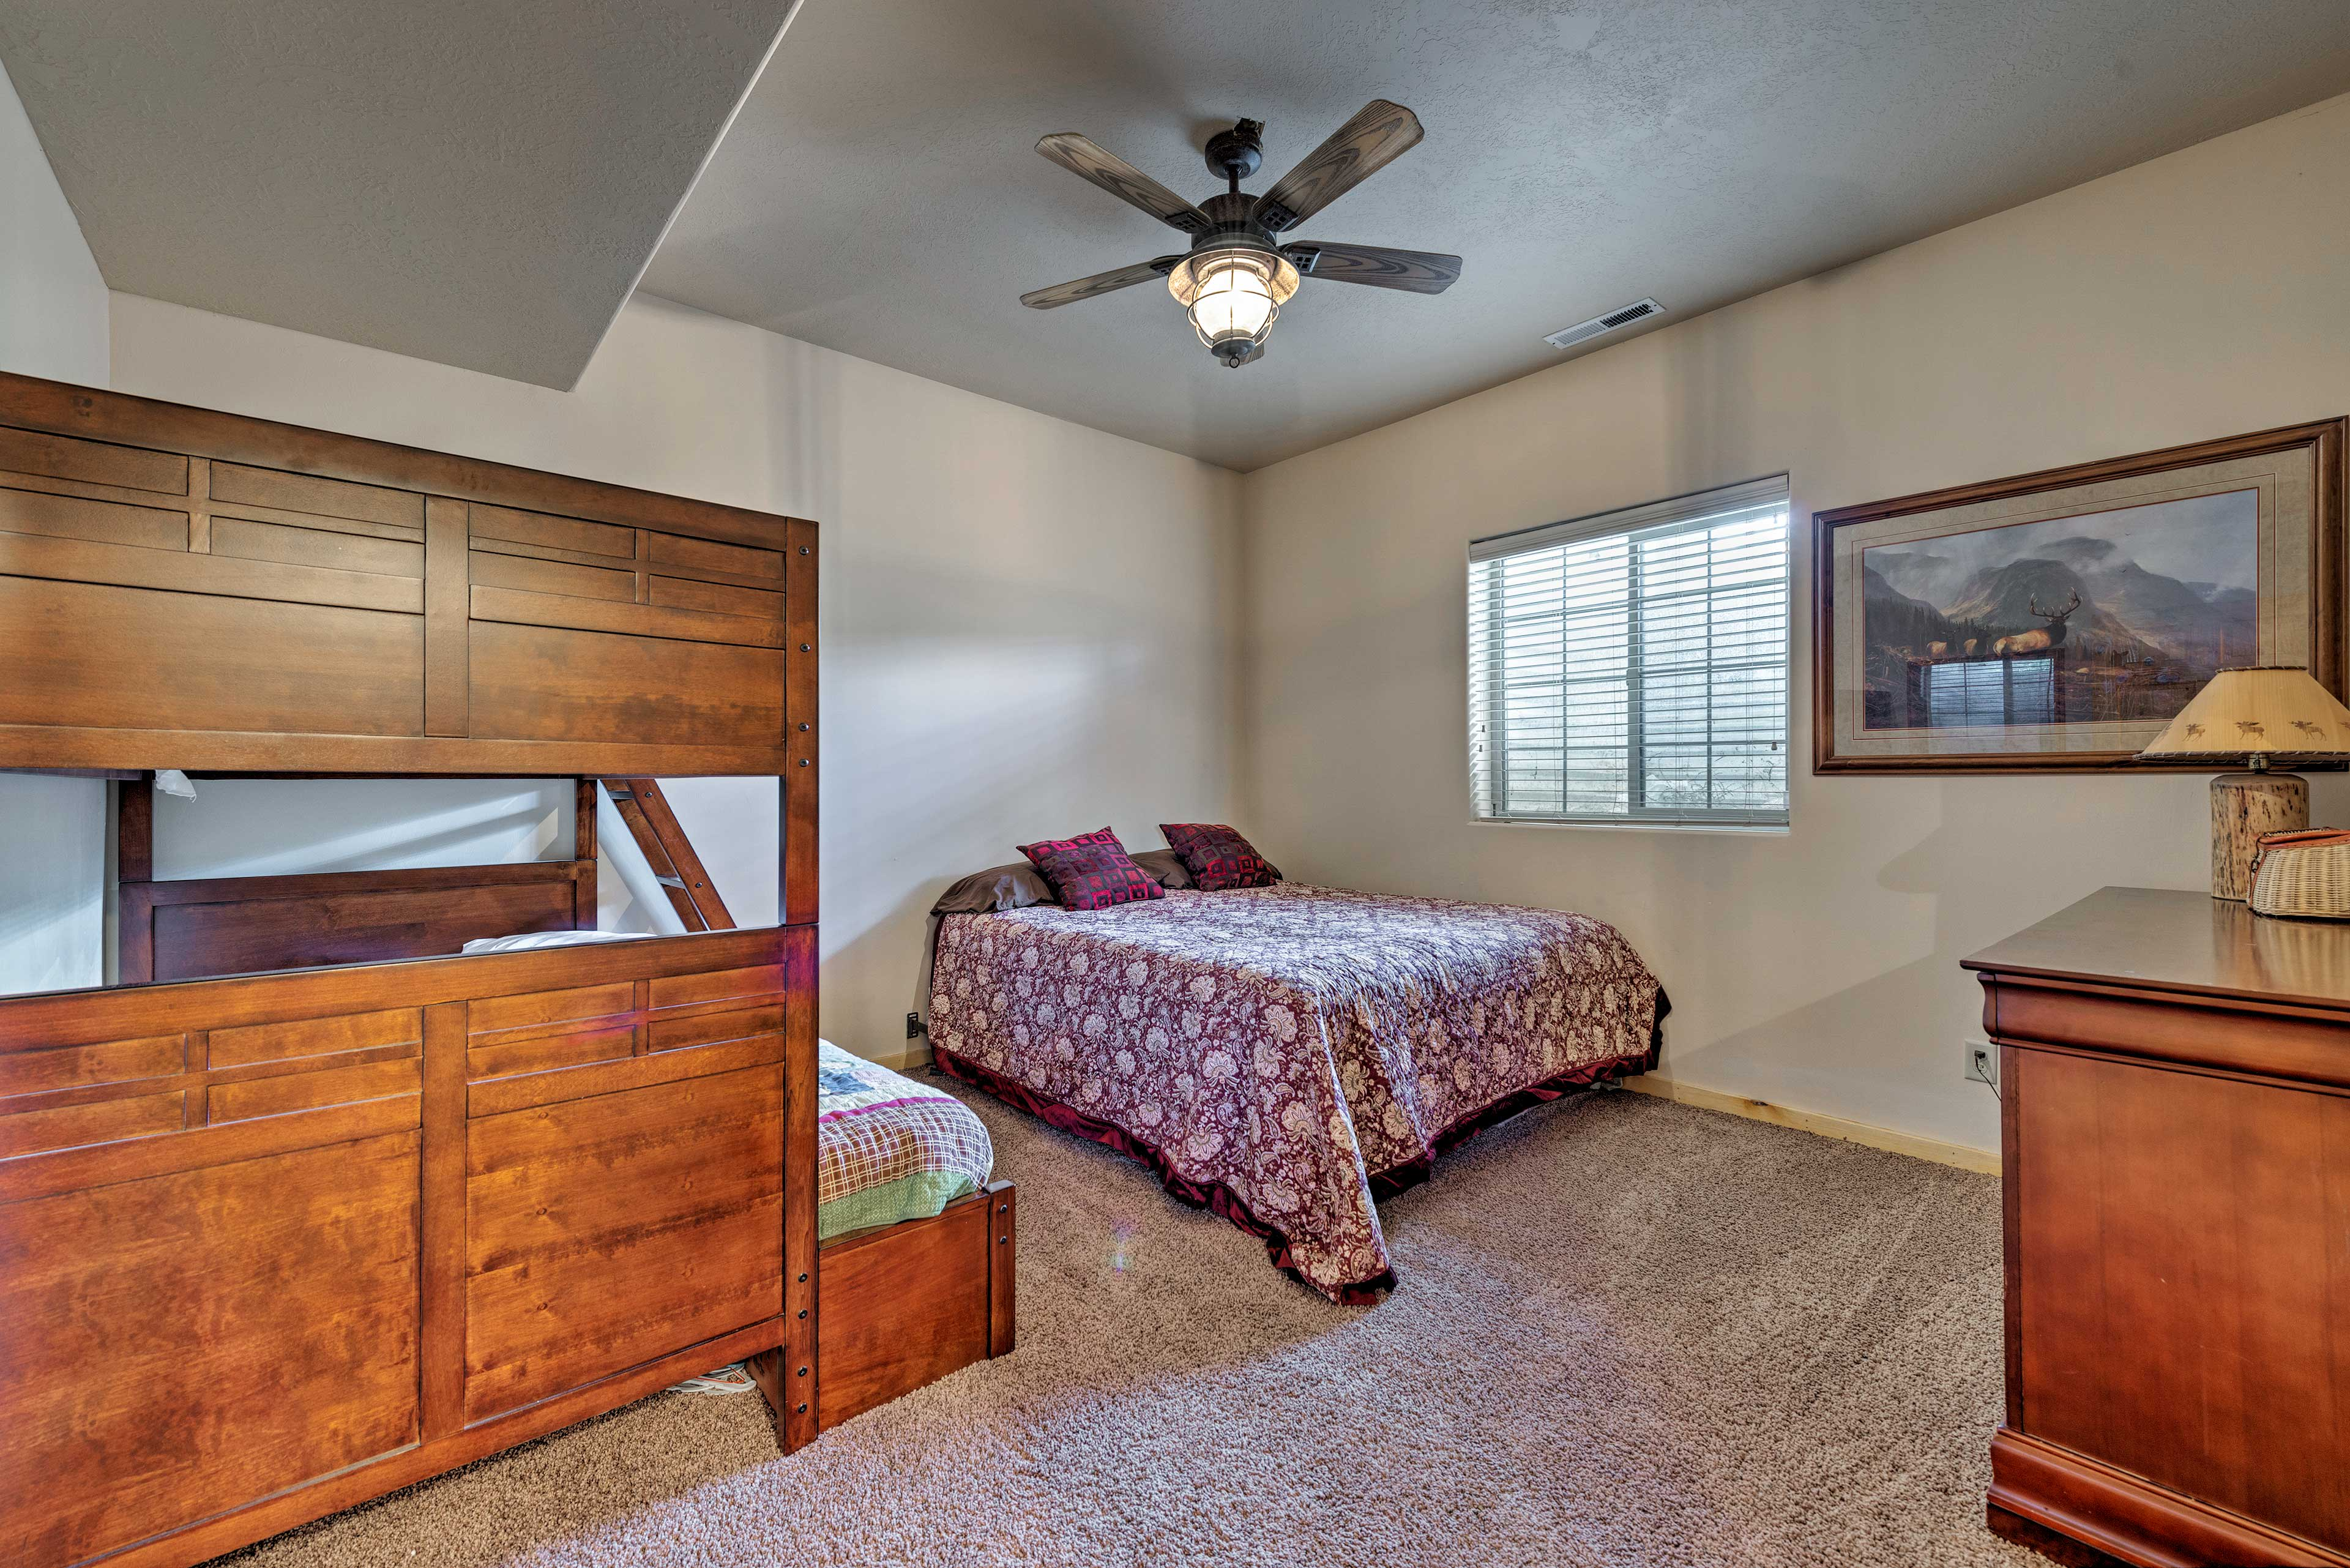 This room now features a king & twin-over-full bunk bed